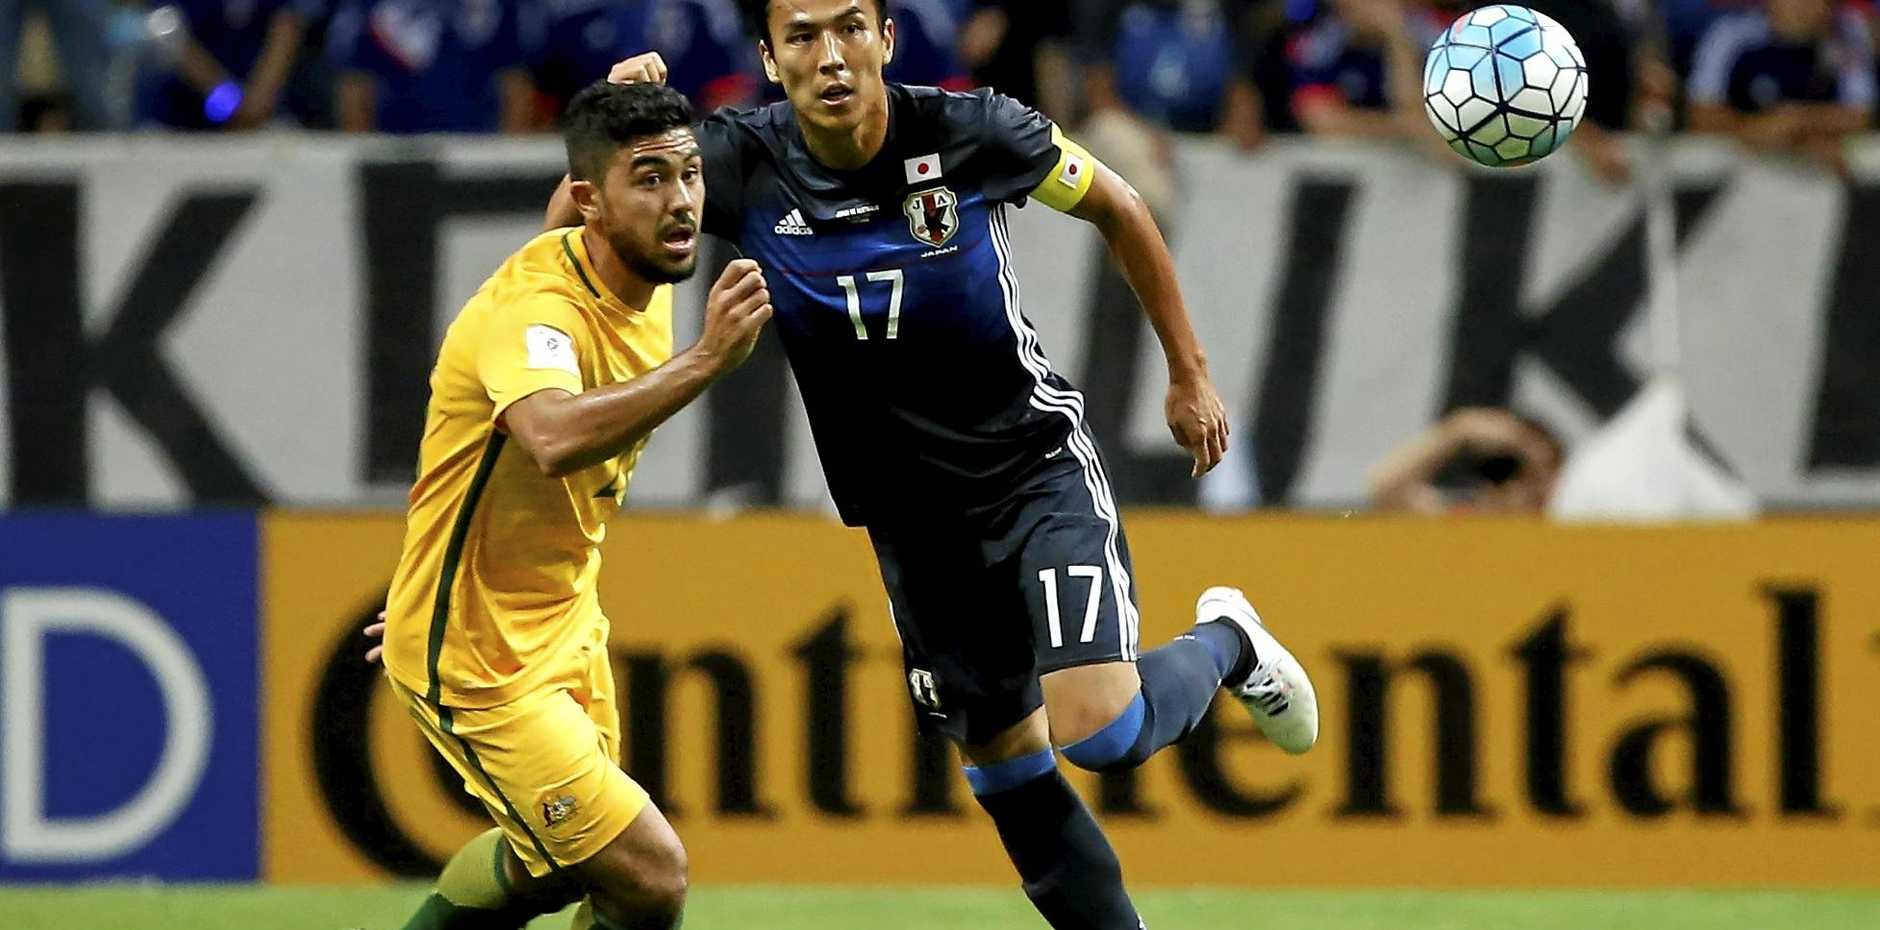 Japan's Makoto Hasebe and Australia's Massimo Luongo during their World Cup Group B qualifying match in Saitama.